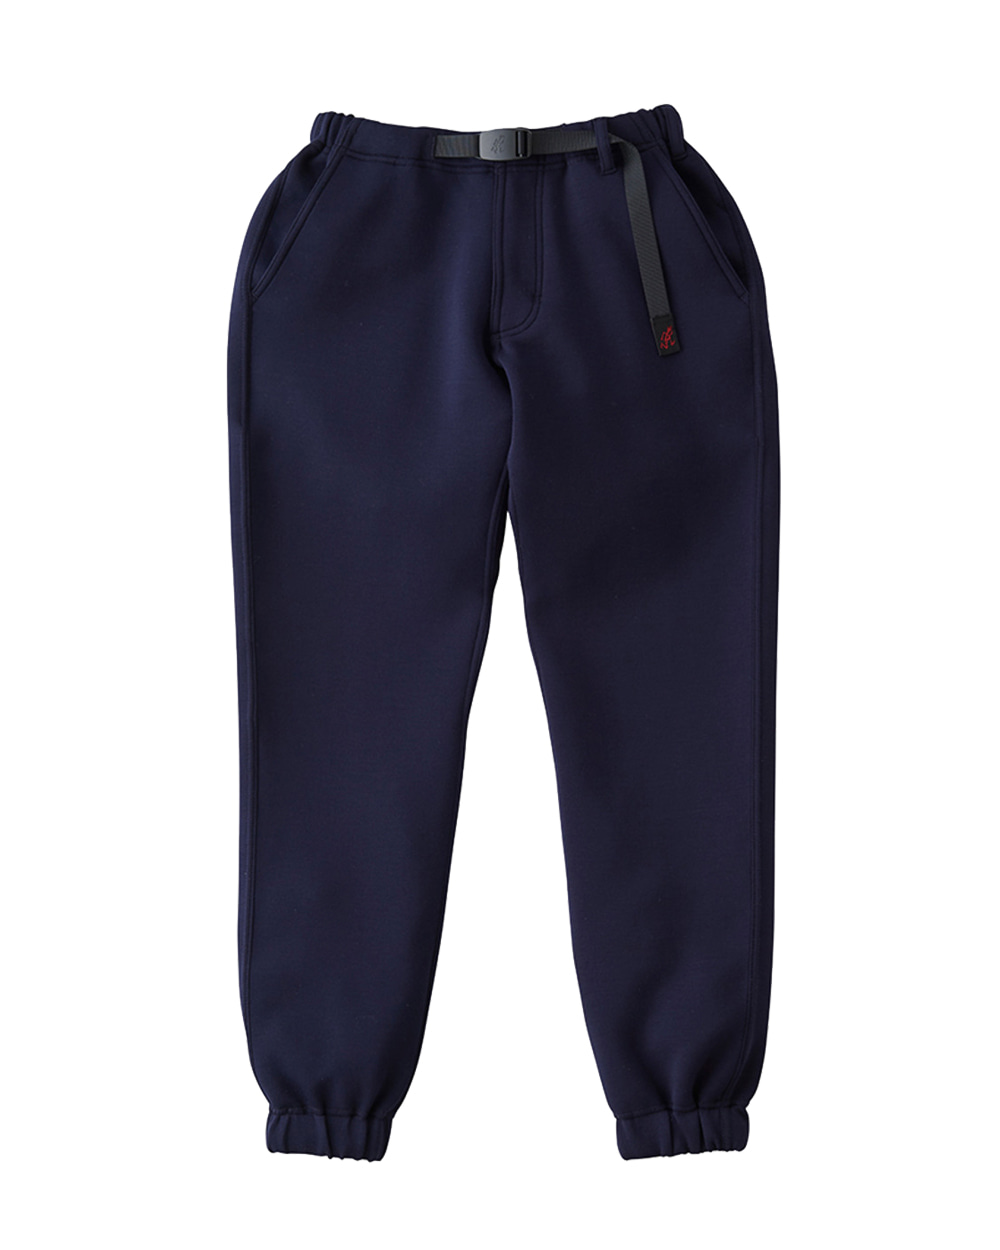 그라미치 TECH KNIT TRUCK PANTS (Double navy)